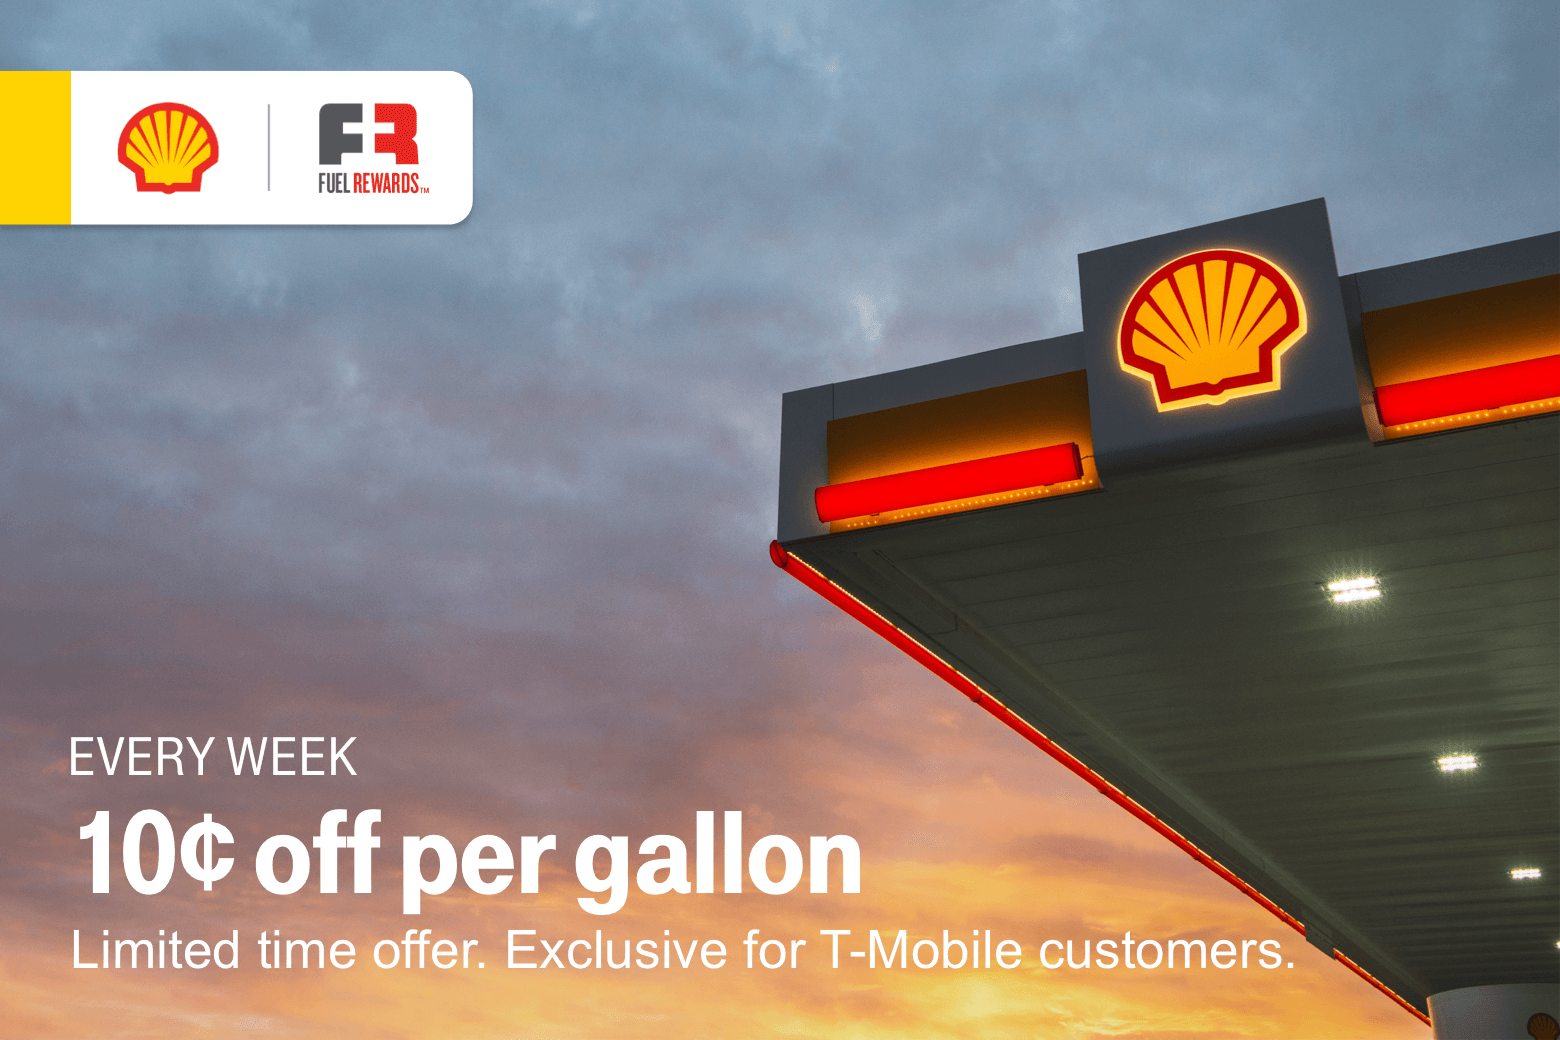 Shell. Fuel Rewards. 10 cents off per gallon. Every week. Limited time offer. Exclusive for T-Mobile customers.